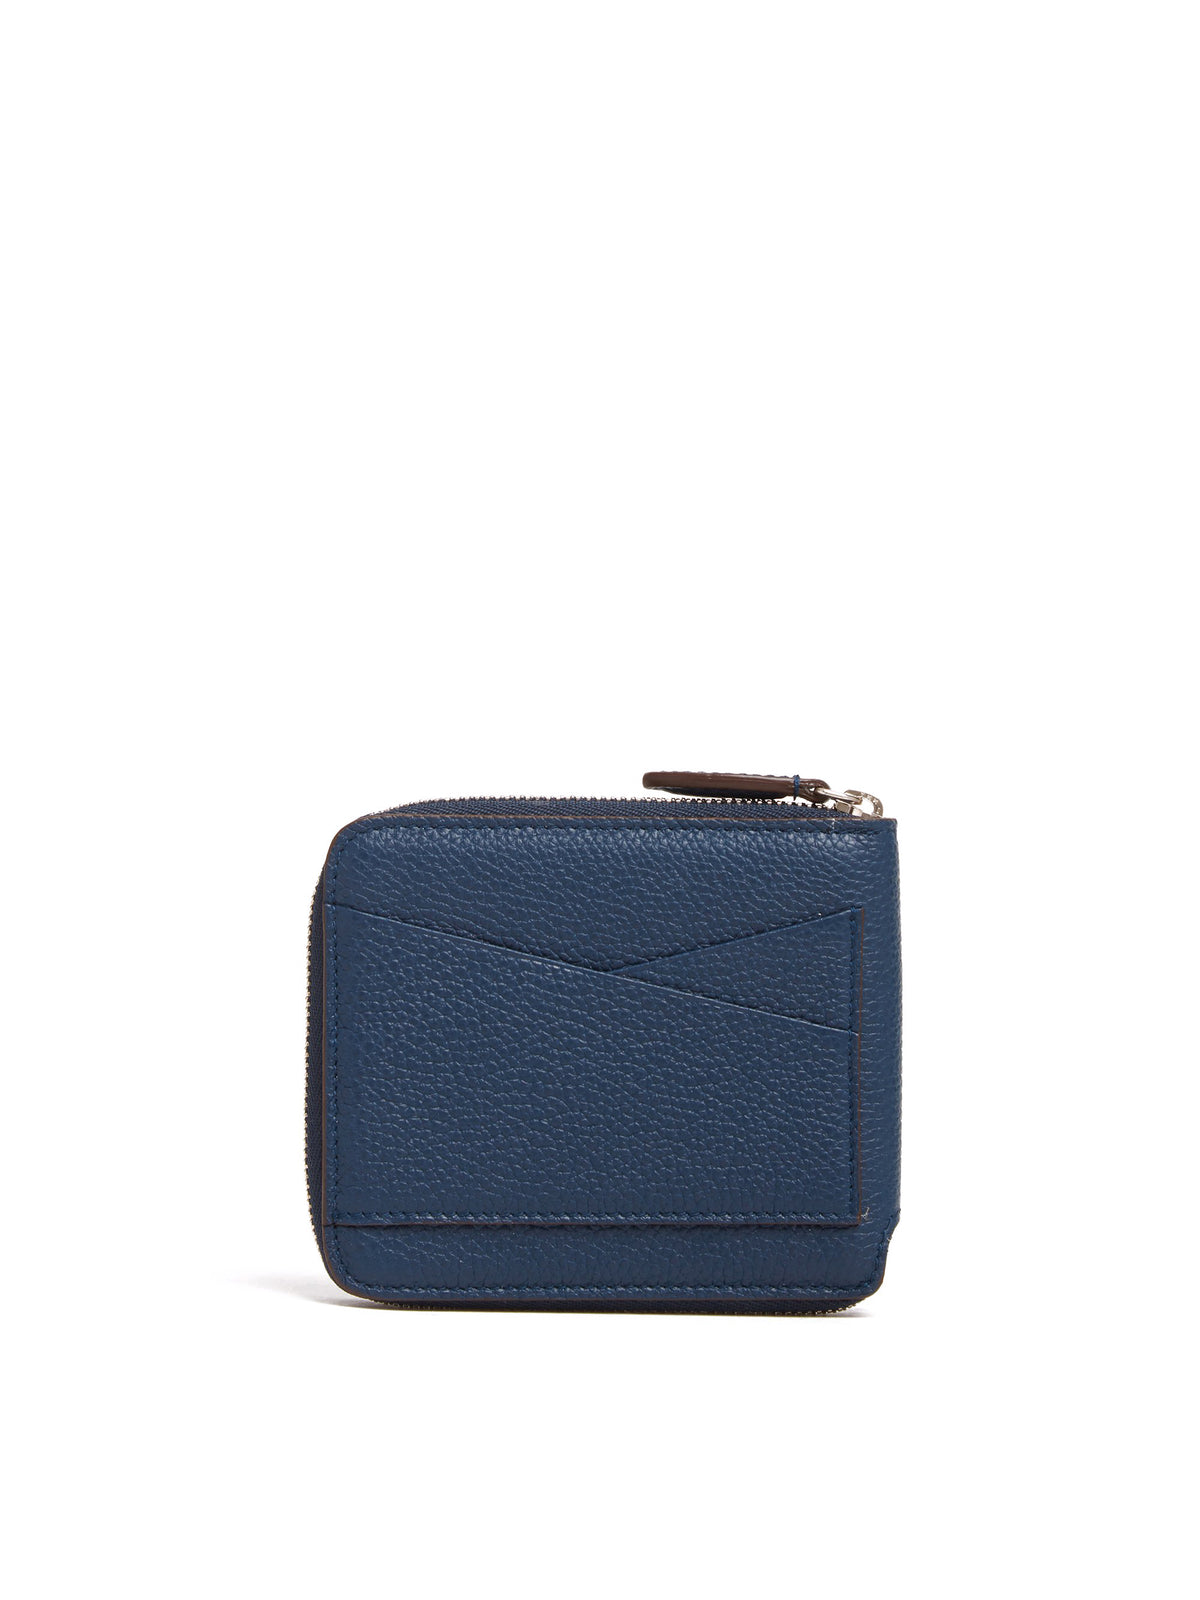 Mark Cross Bi-Fold Leather Zip Wallet Tumbled Grain Navy Back